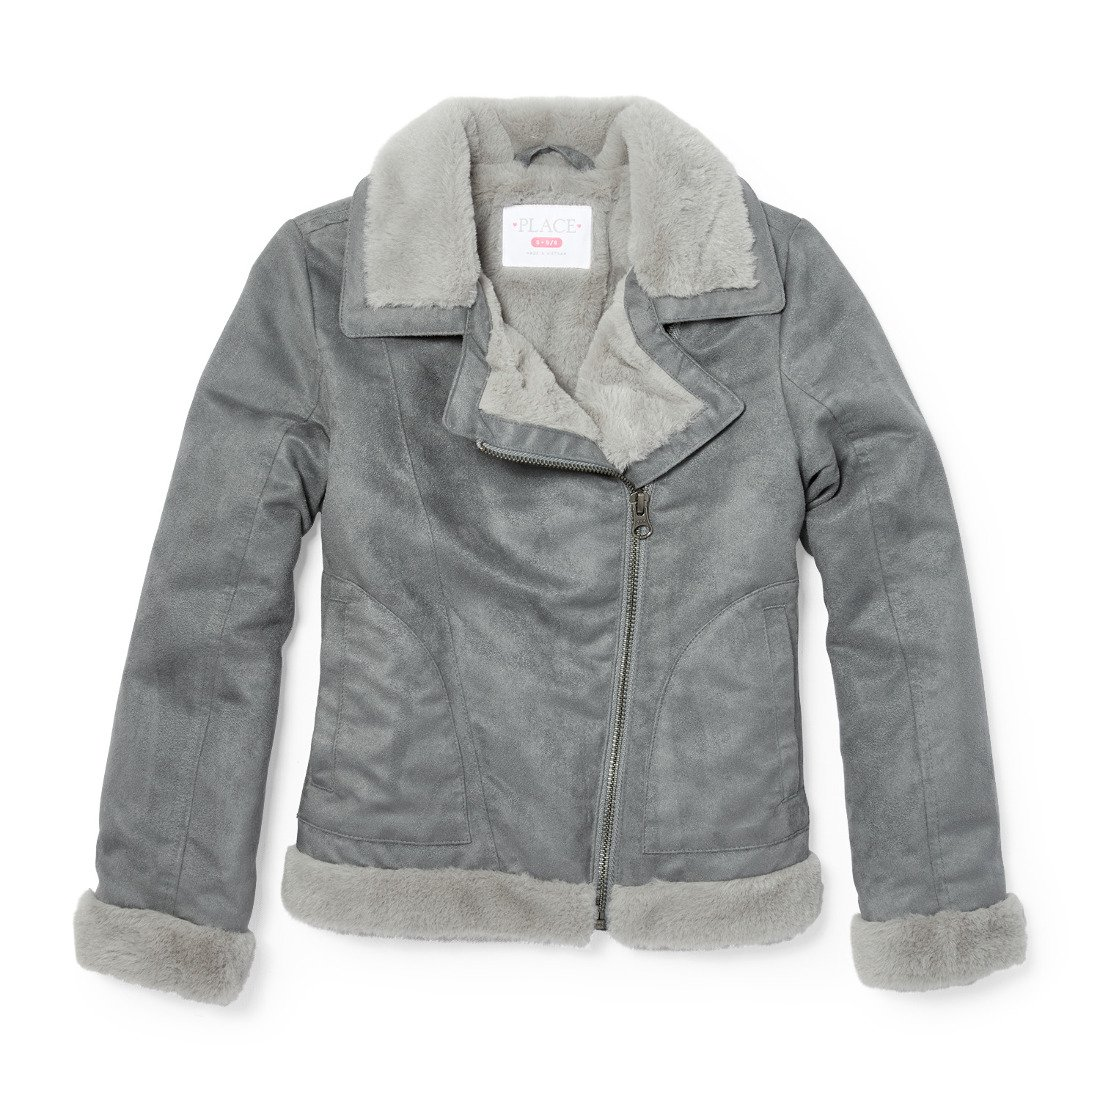 The Childrens Place Girls Jacket